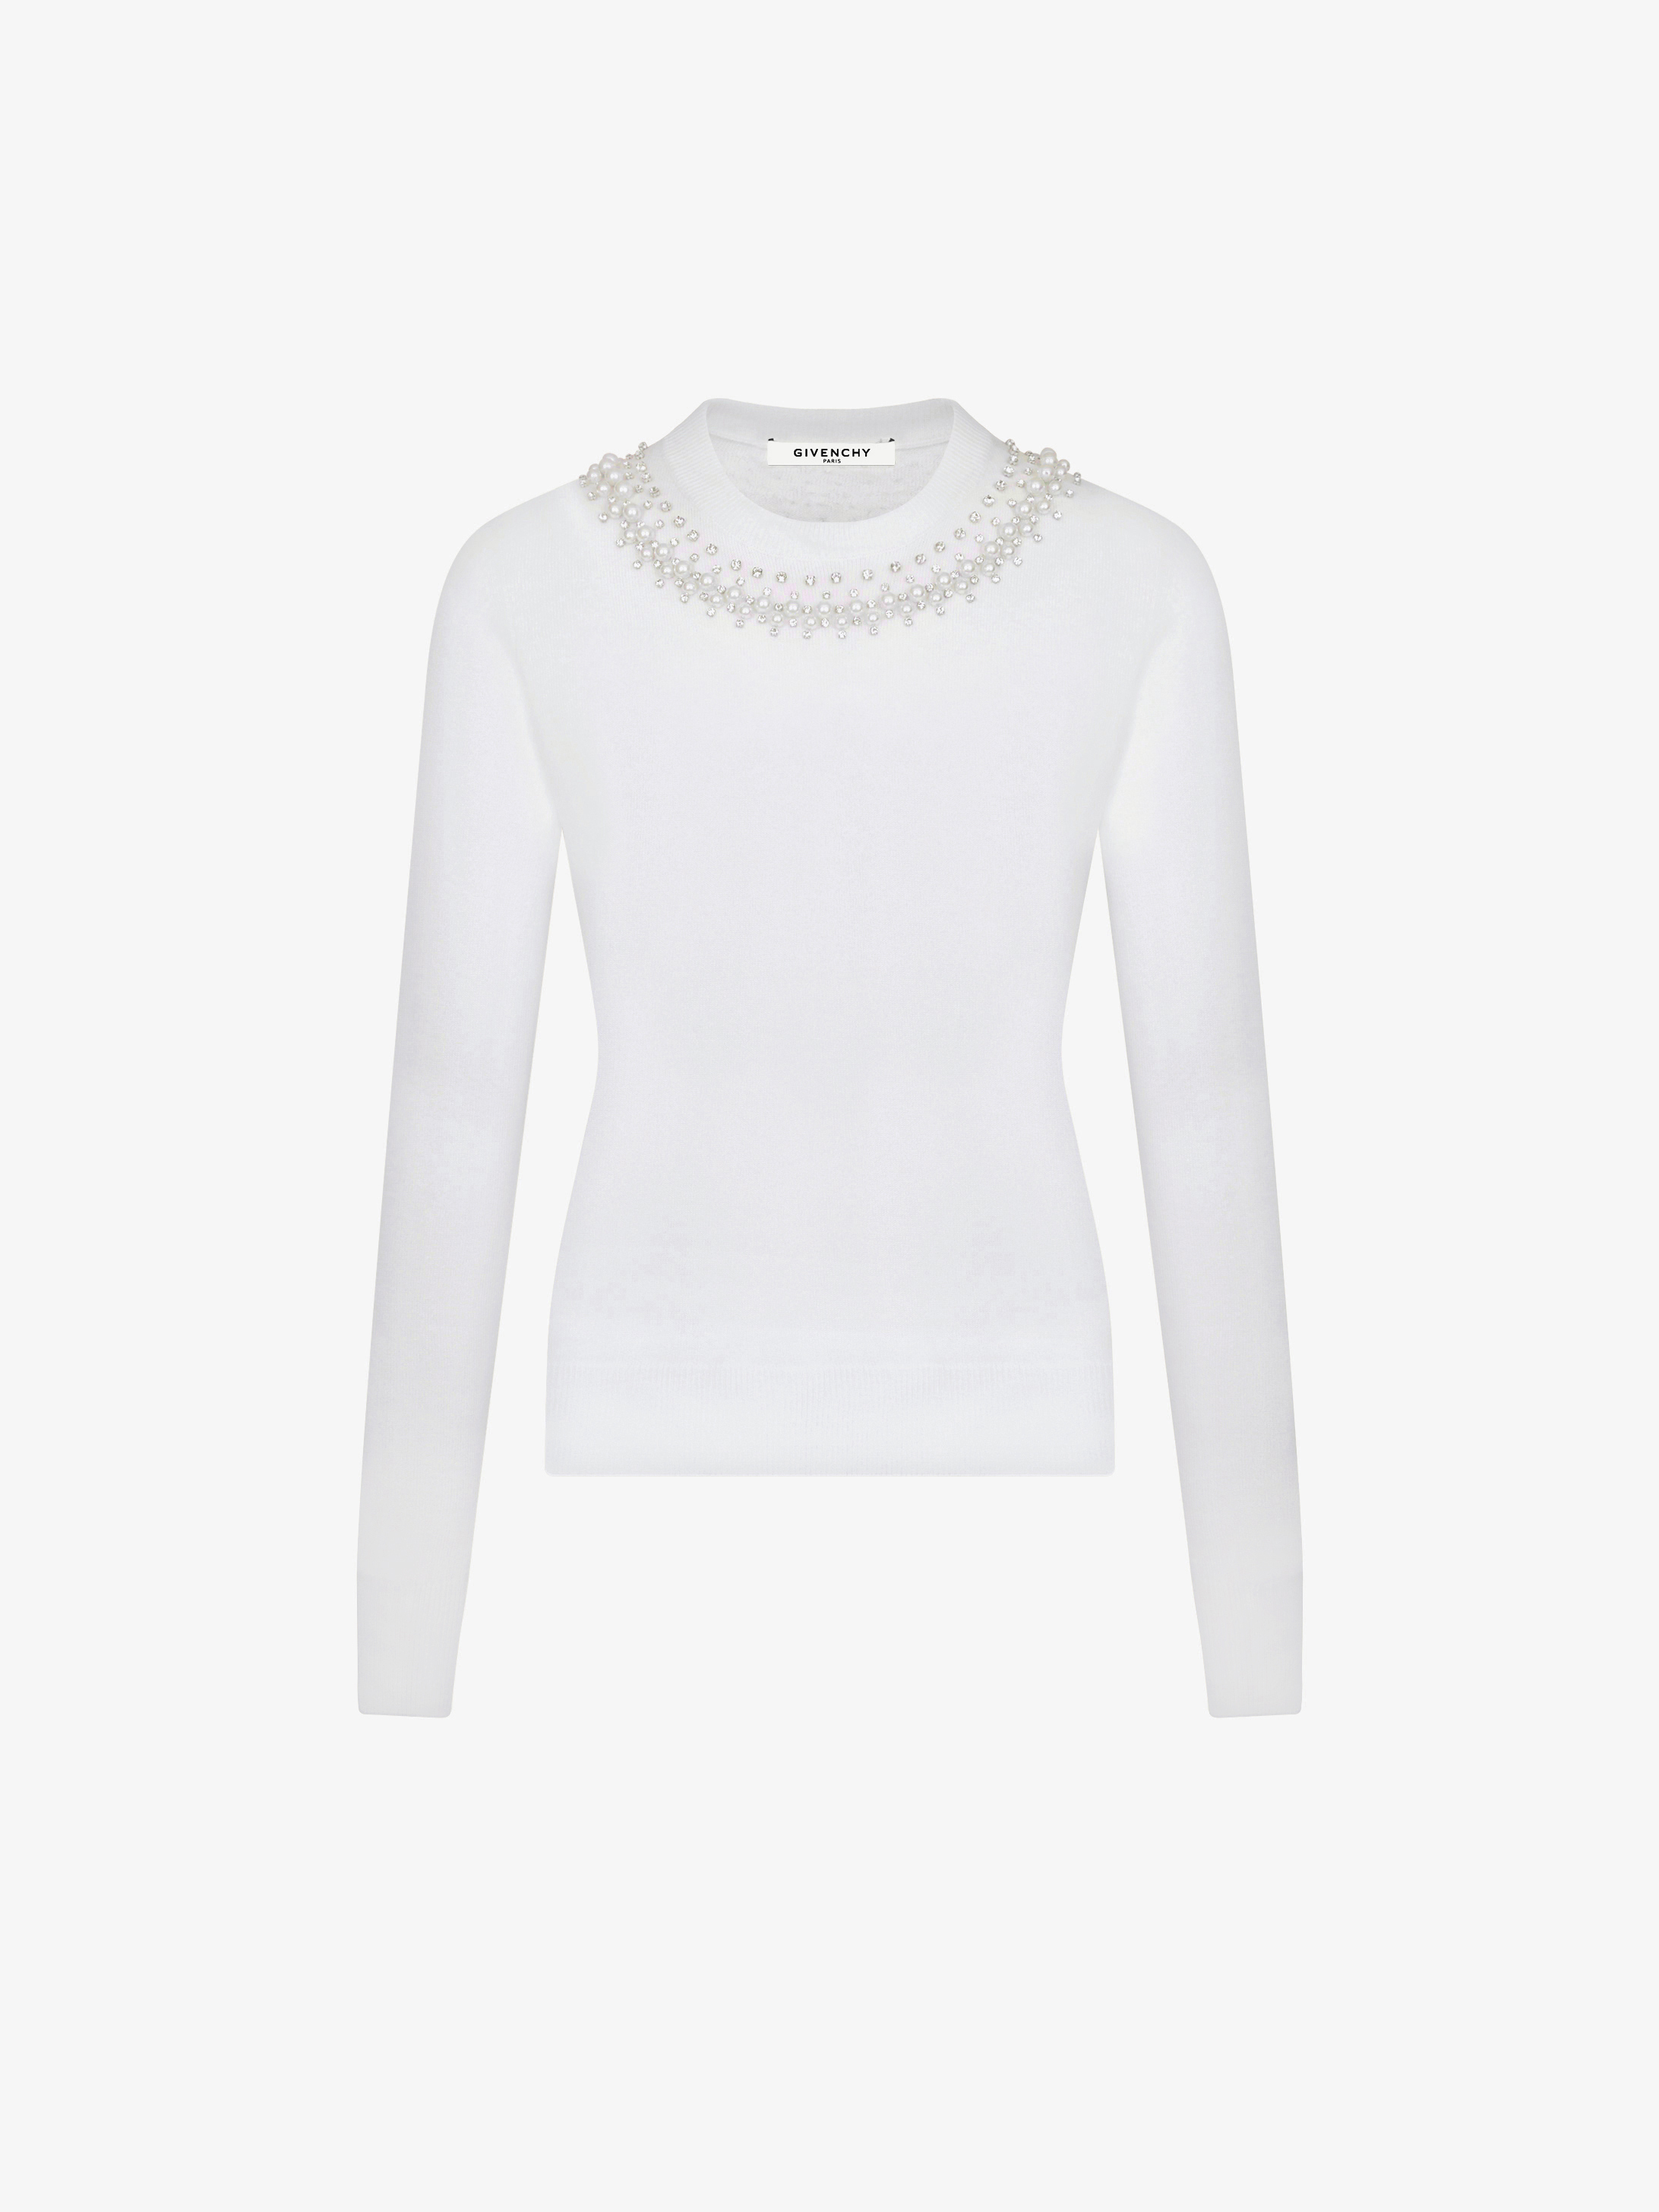 Jewels embroidered jumper